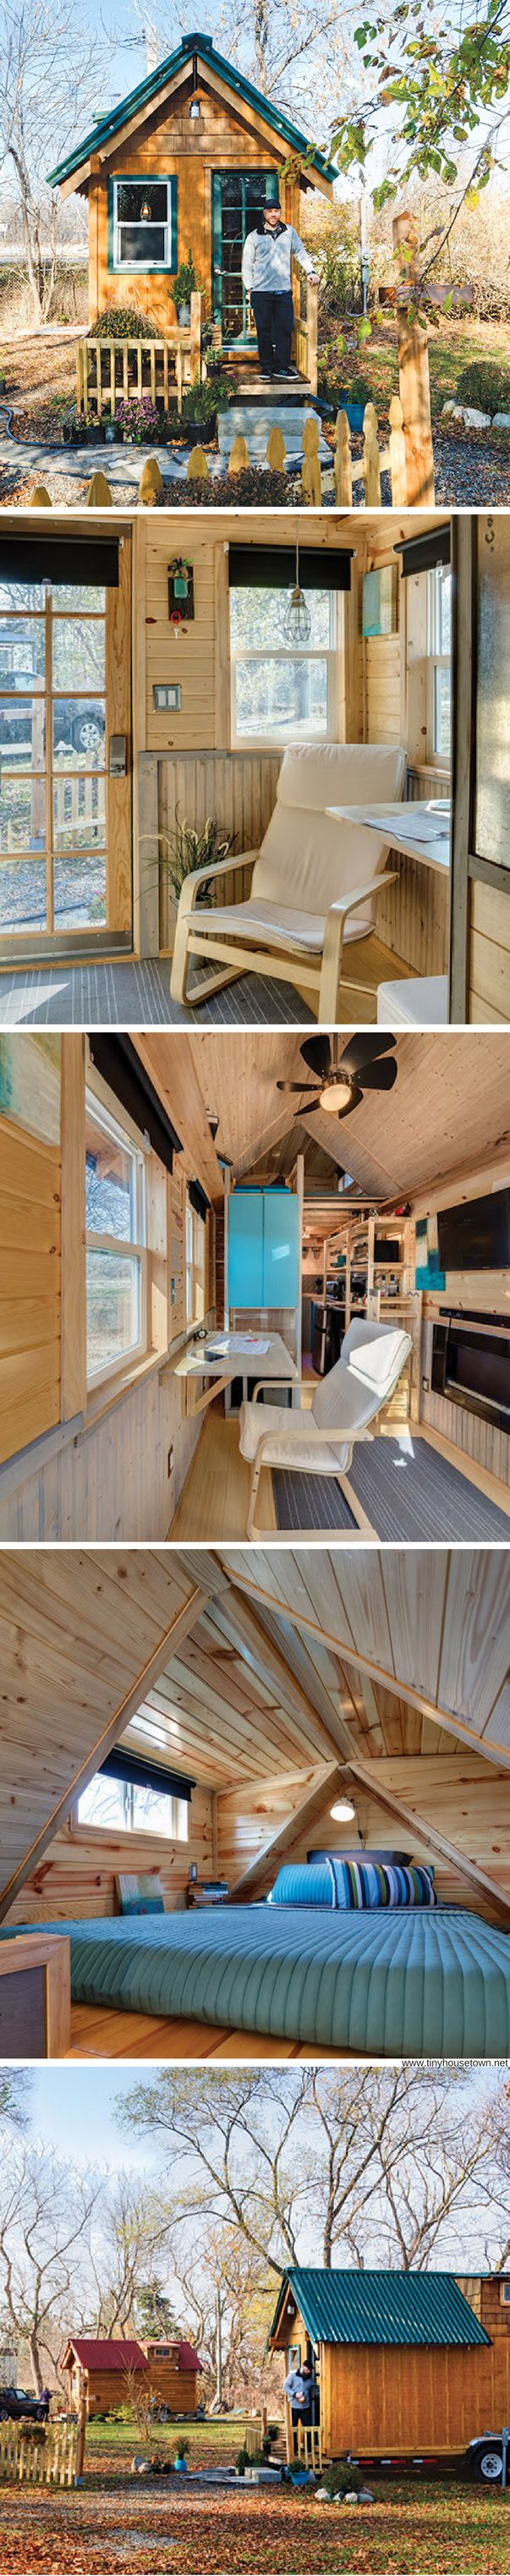 A lakeside tiny house that spans 130 sq ft